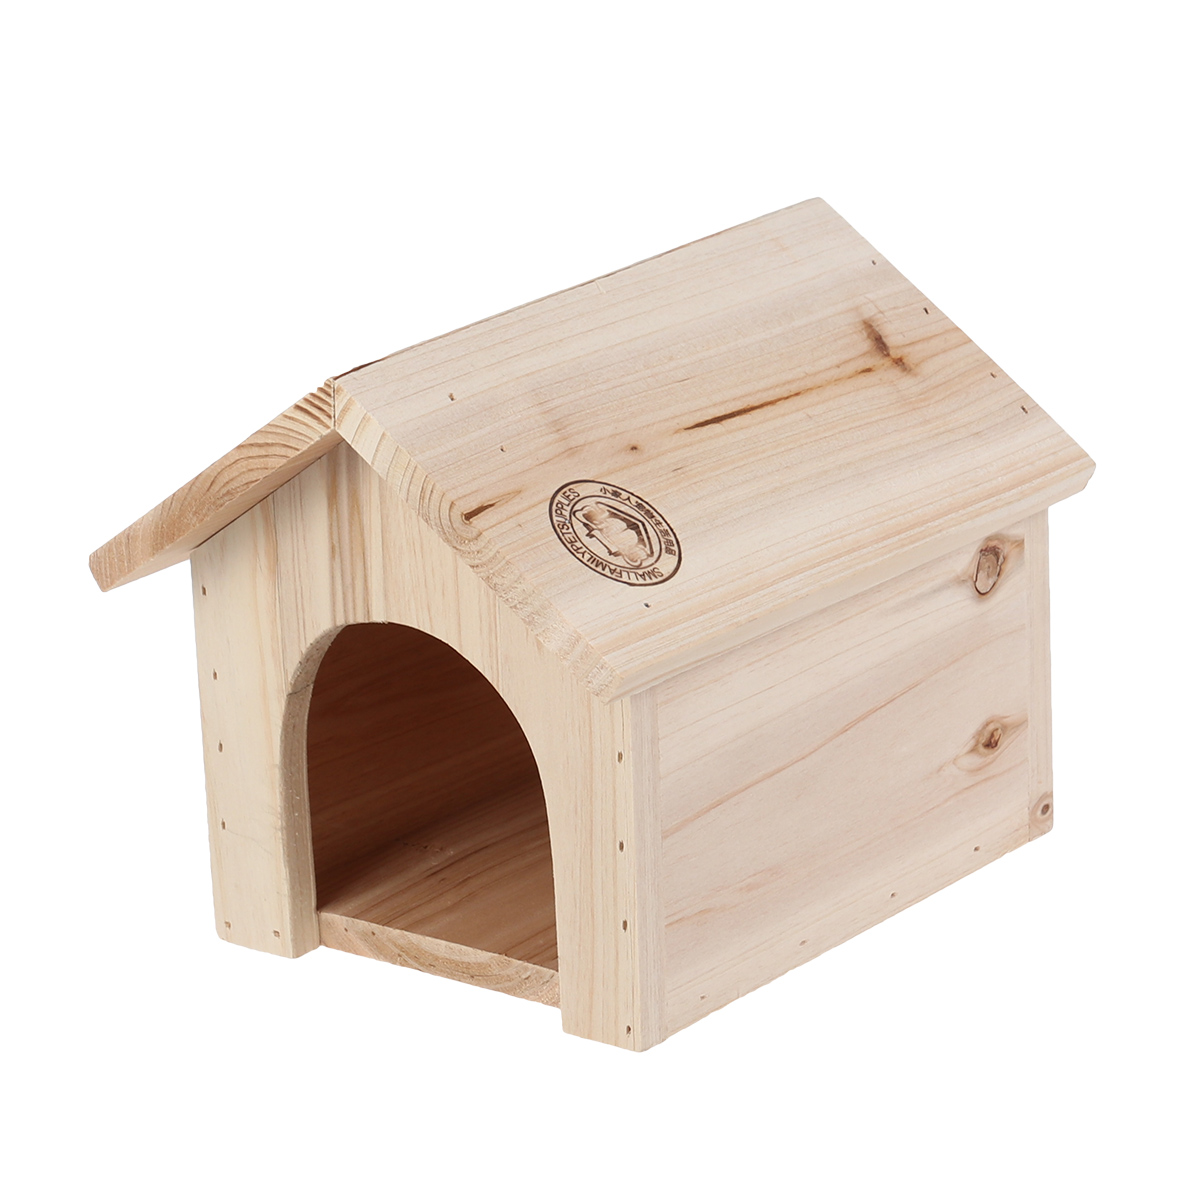 1Pc Wooden House Heat-resistant Pine Household Chinchilla Squirrel Nest Feeding Station Pet Supplies Sitting Shelve